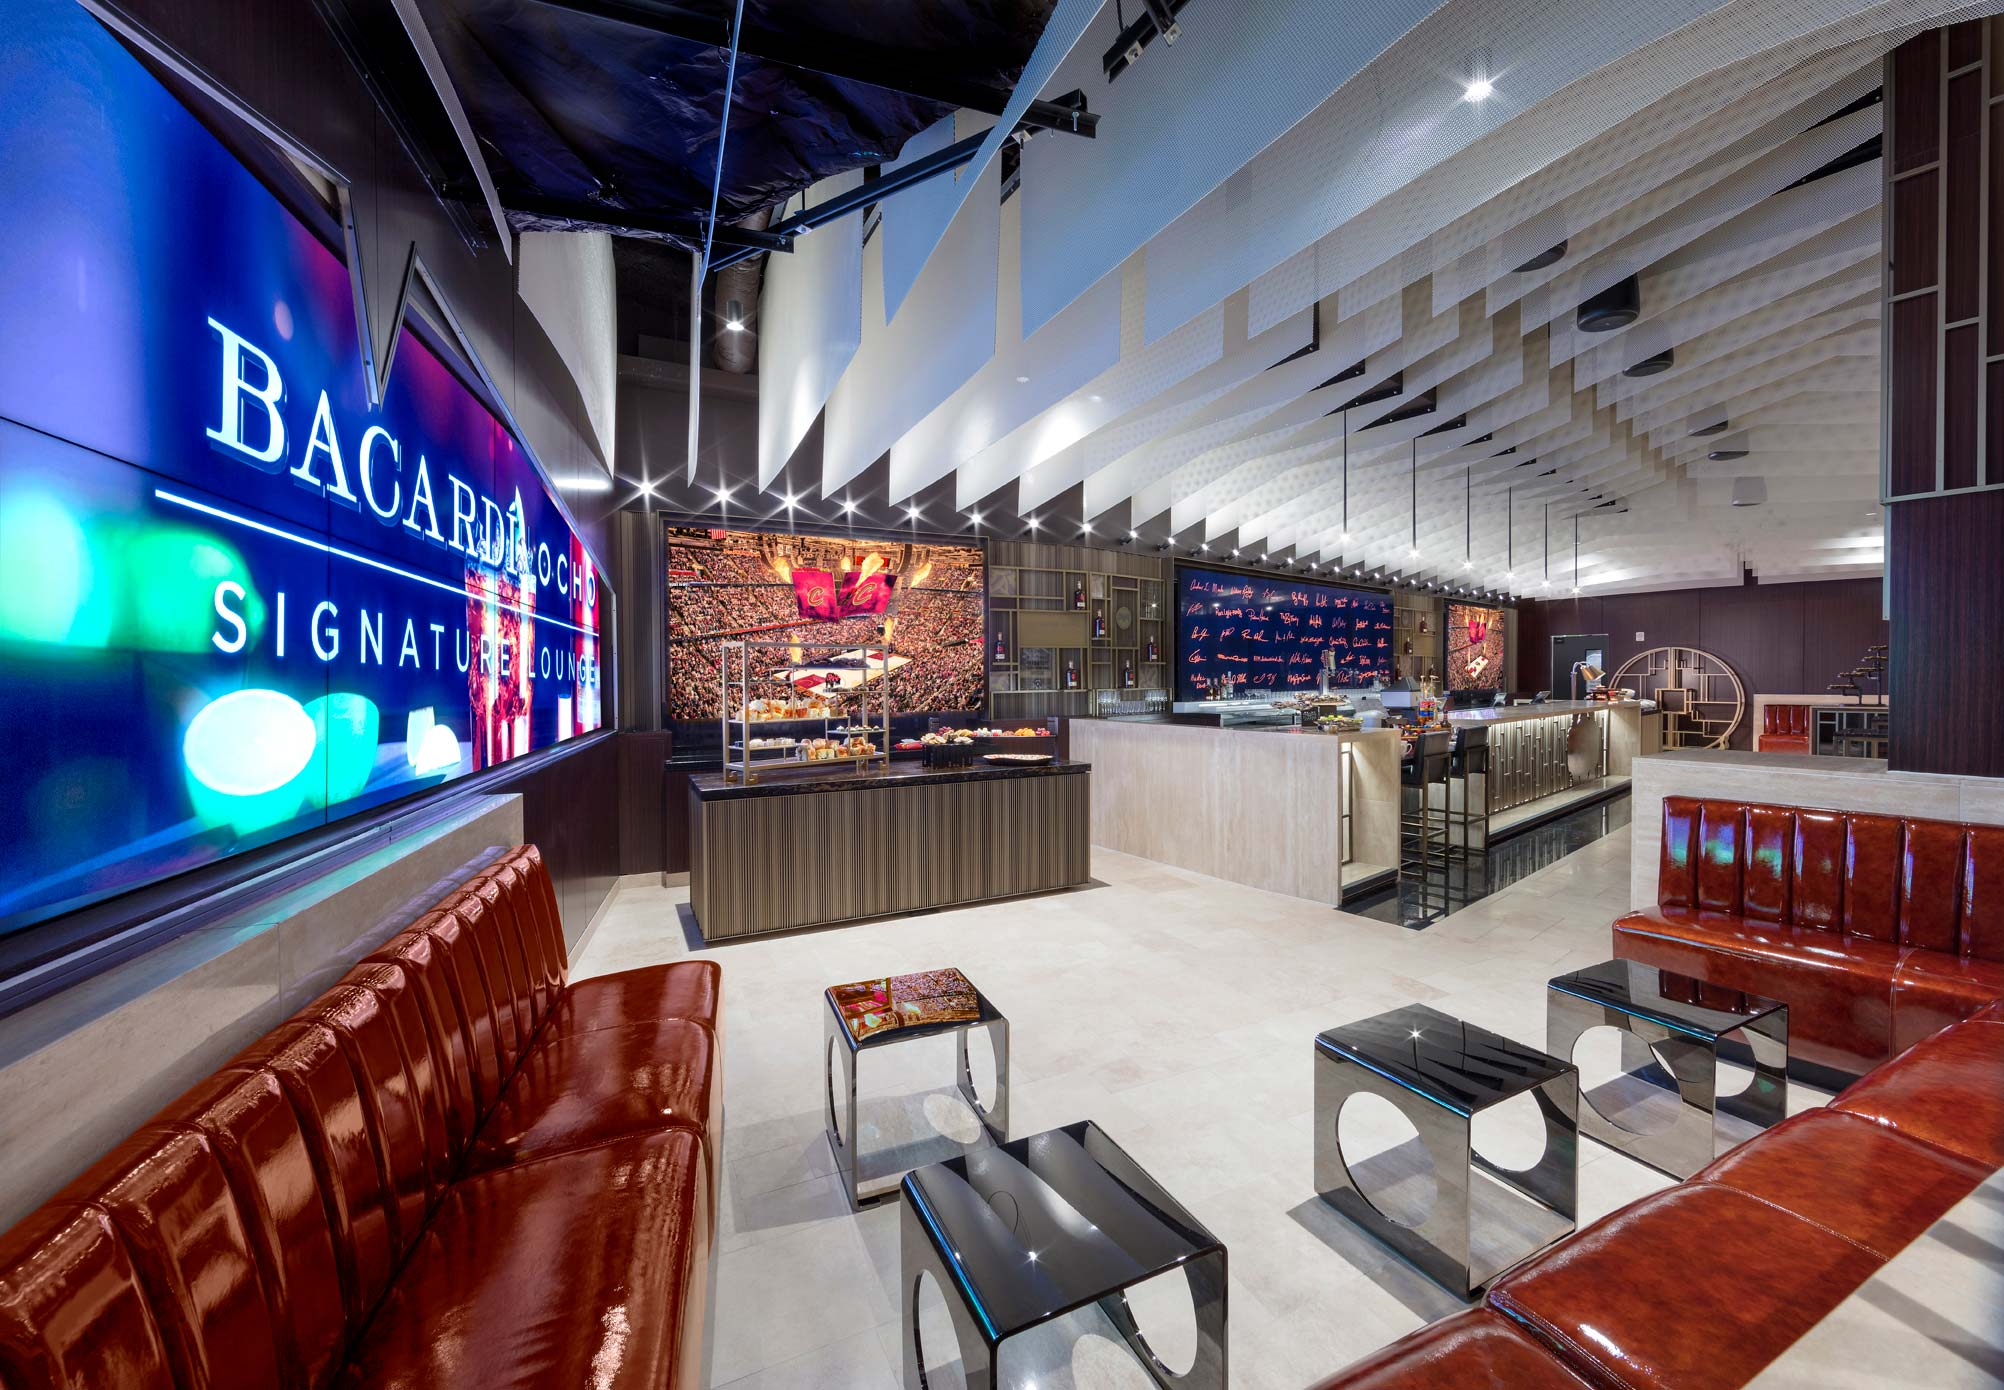 Bacardi Ocho Signature Lounge Interior